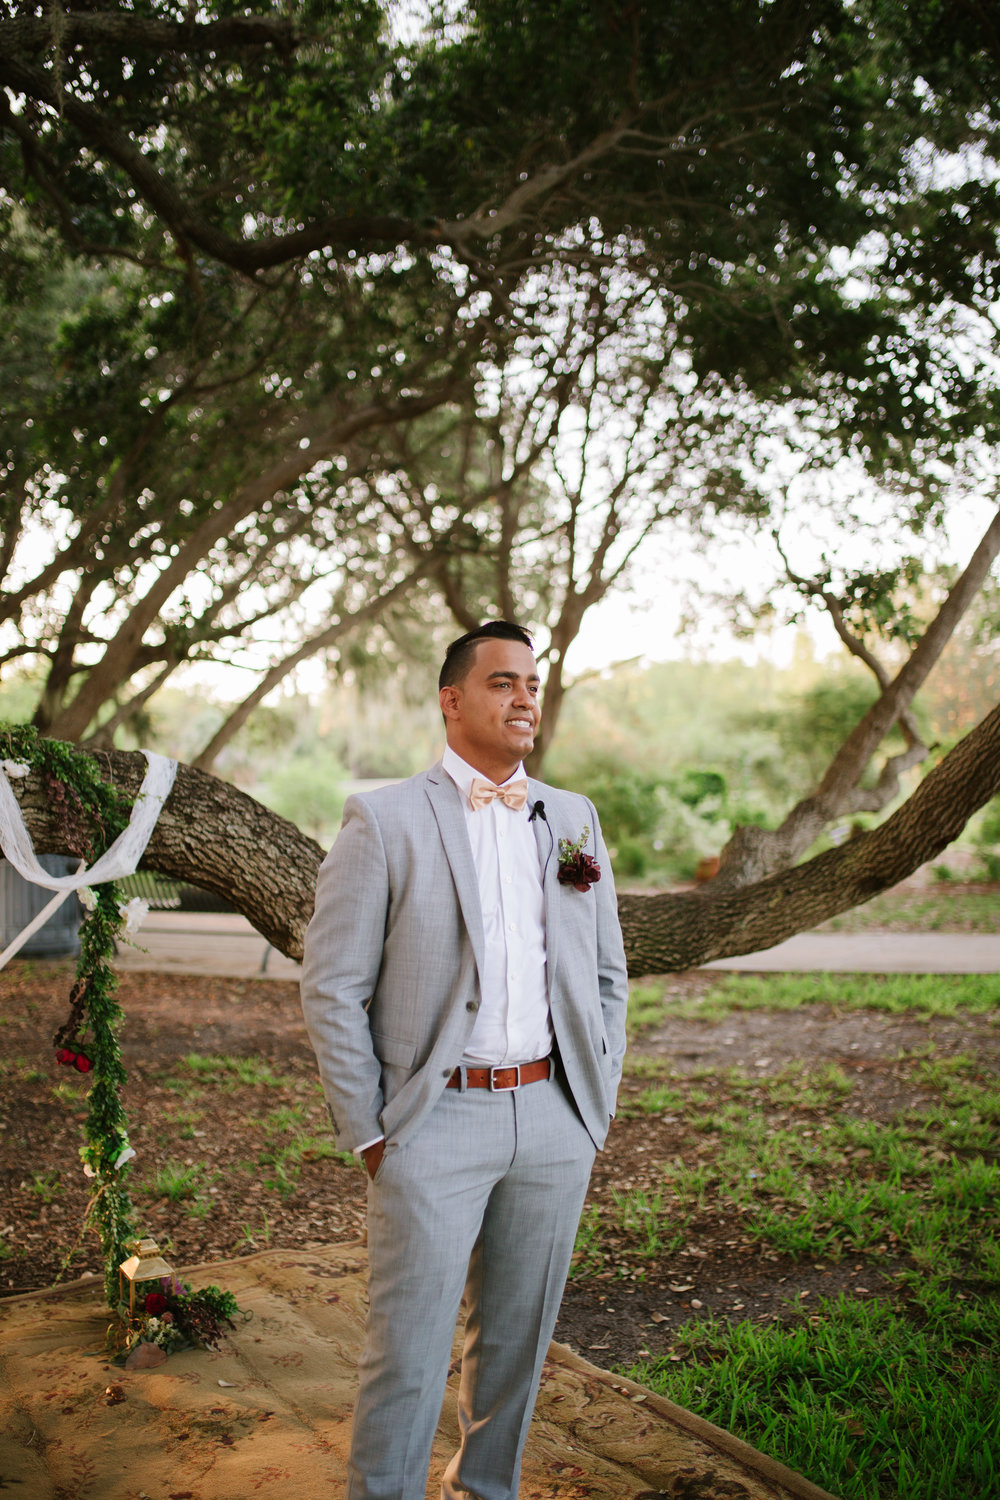 2017.05.23 Barbara and Mauricio Sales Port St Lucie Wedding (296 of 772).jpg